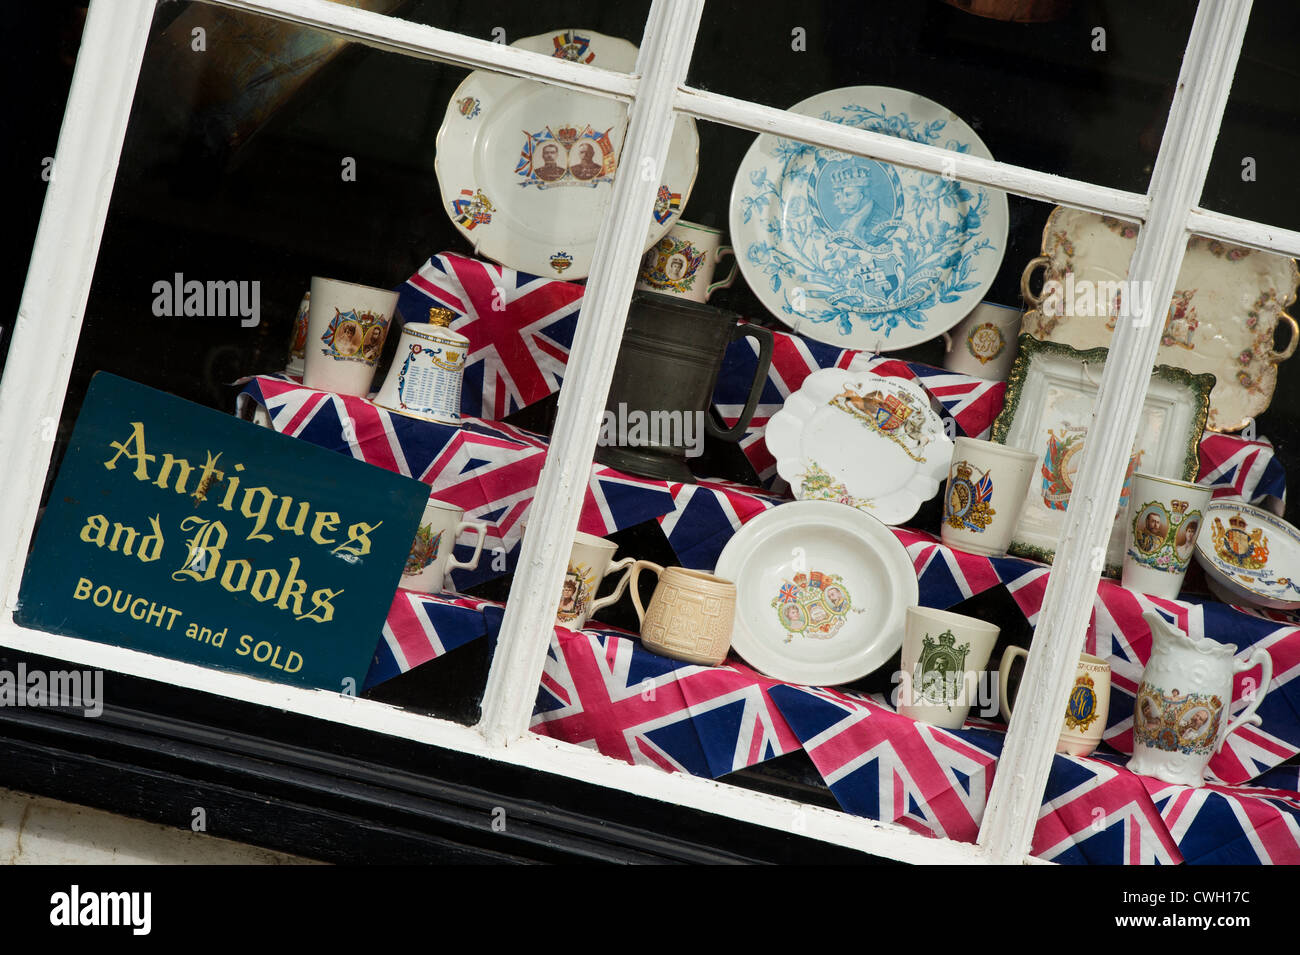 Antique shop with Royal memorabilia and union jacks in the window. Presteigne,  Powys, Wales - Stock Image